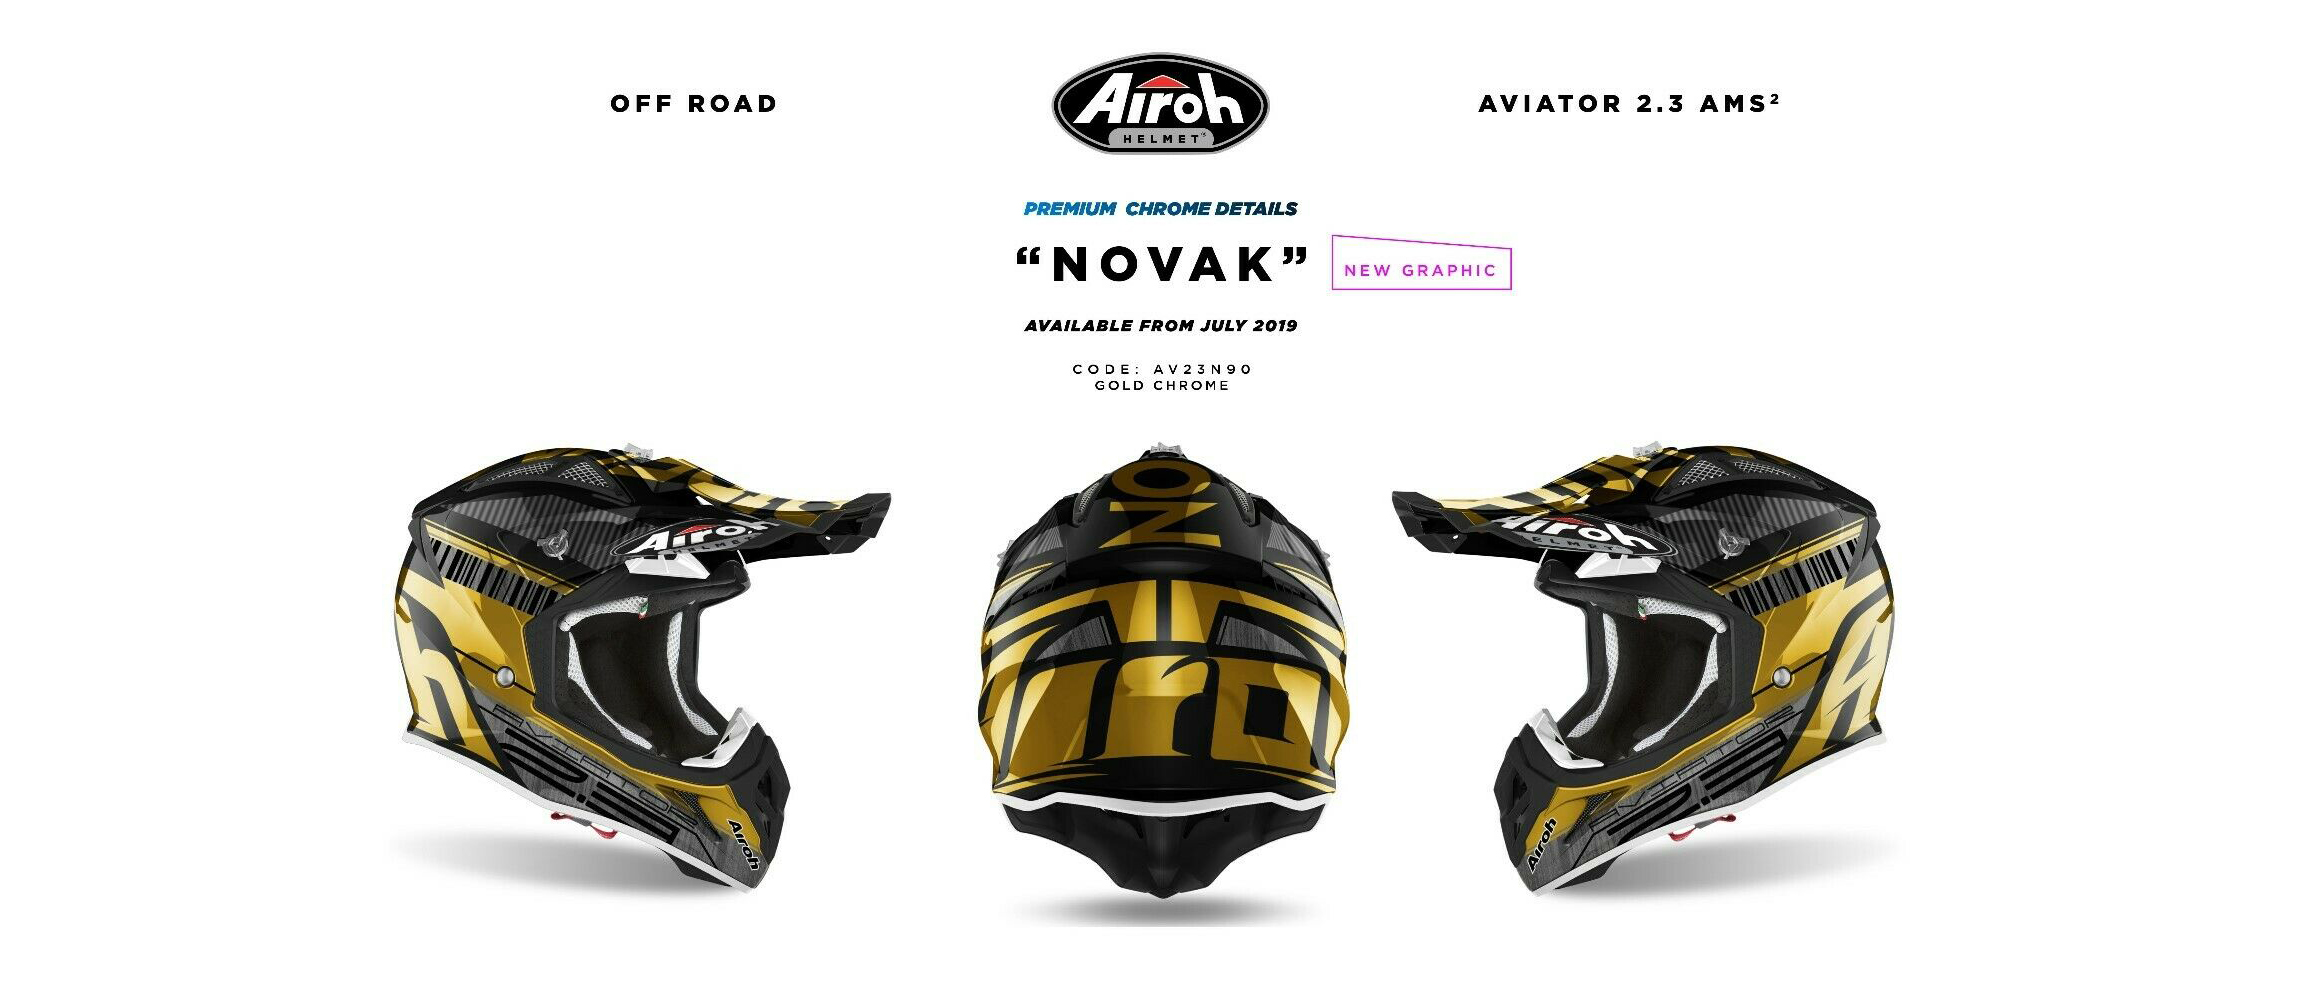 Motocross-Airoh-Aviator-23-Ams-Novak-2020-Casco-Cross-Enduro-xboot-factory